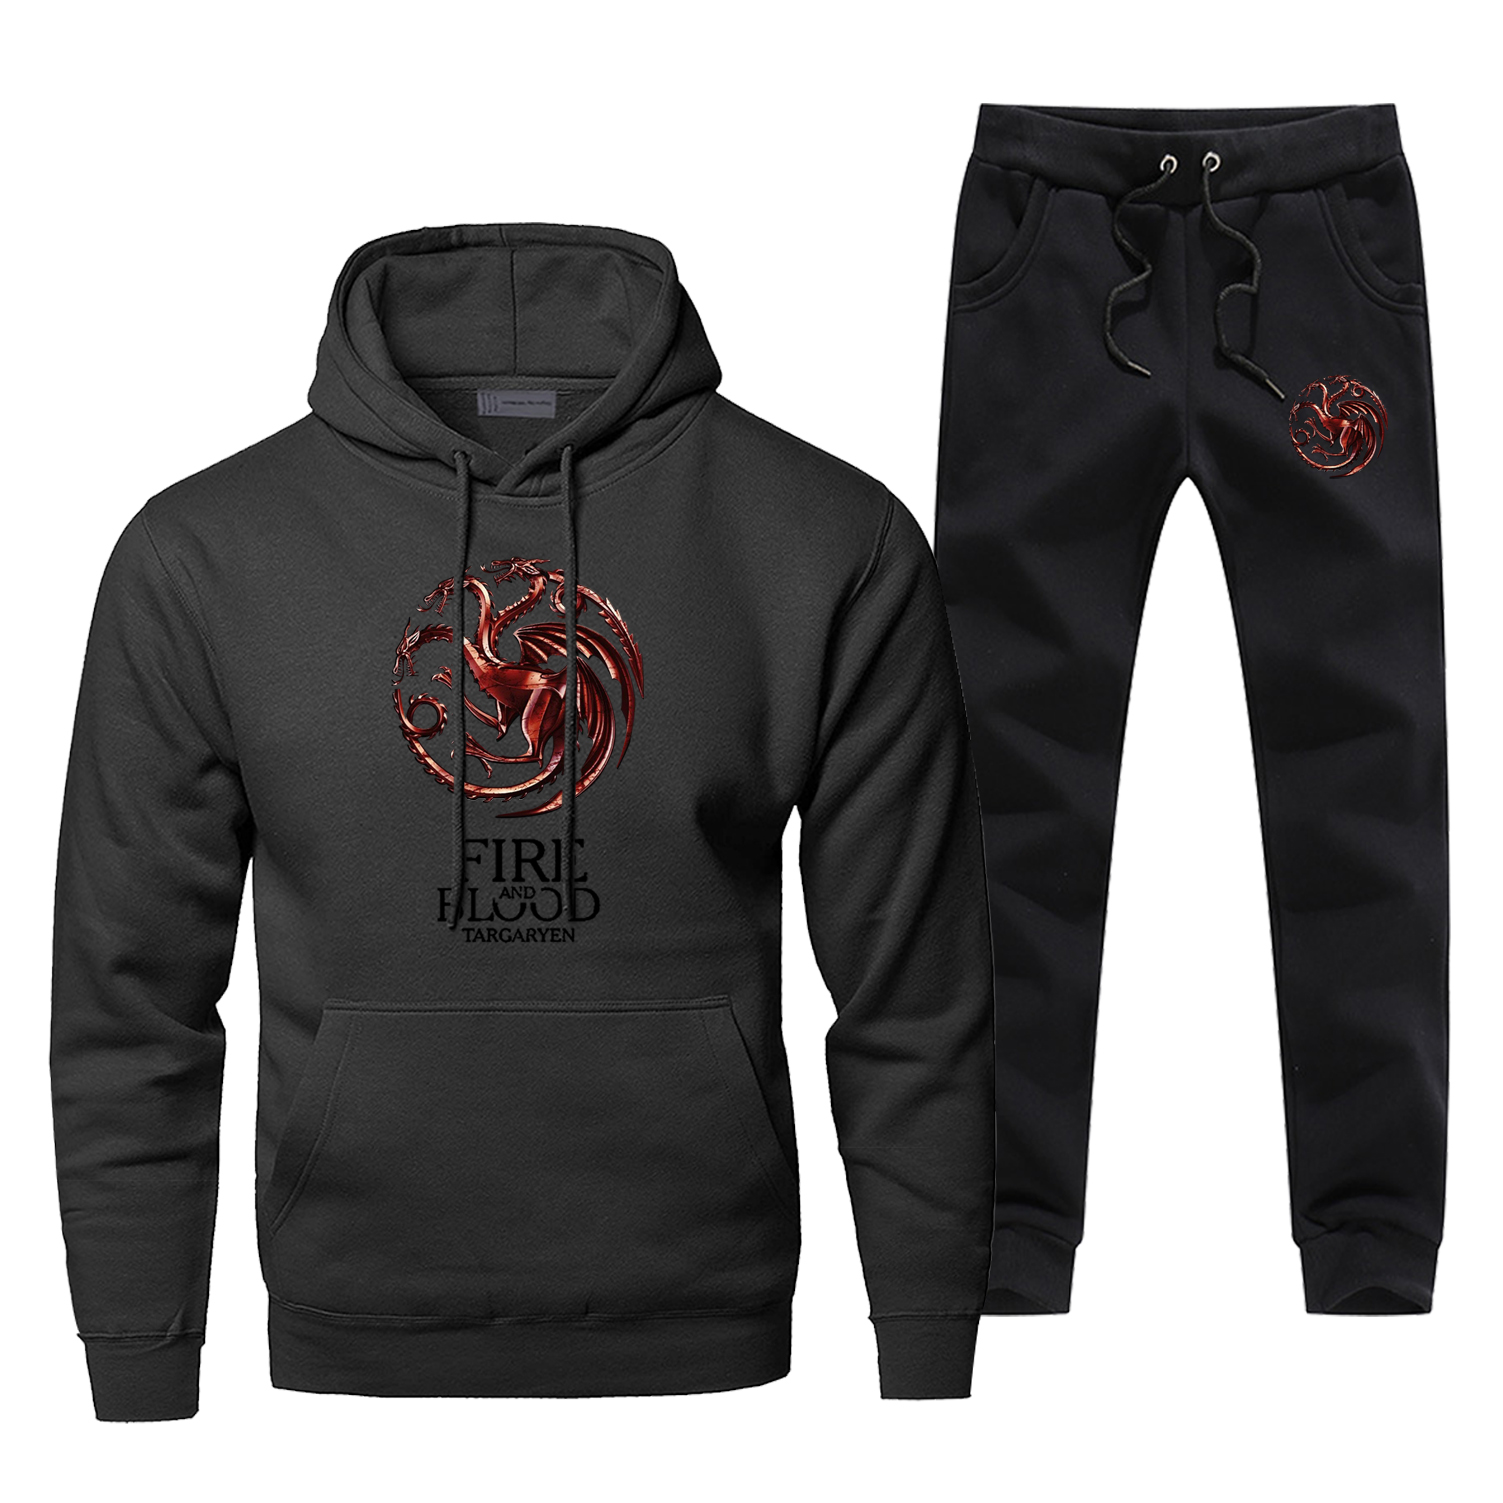 Game Of Thrones Hoodies Pants Set Fire Flood Men Hoodie Sweatshirt Mens Hoodies Pollover 2 Piece Set Streetwear Male Sweatshirts